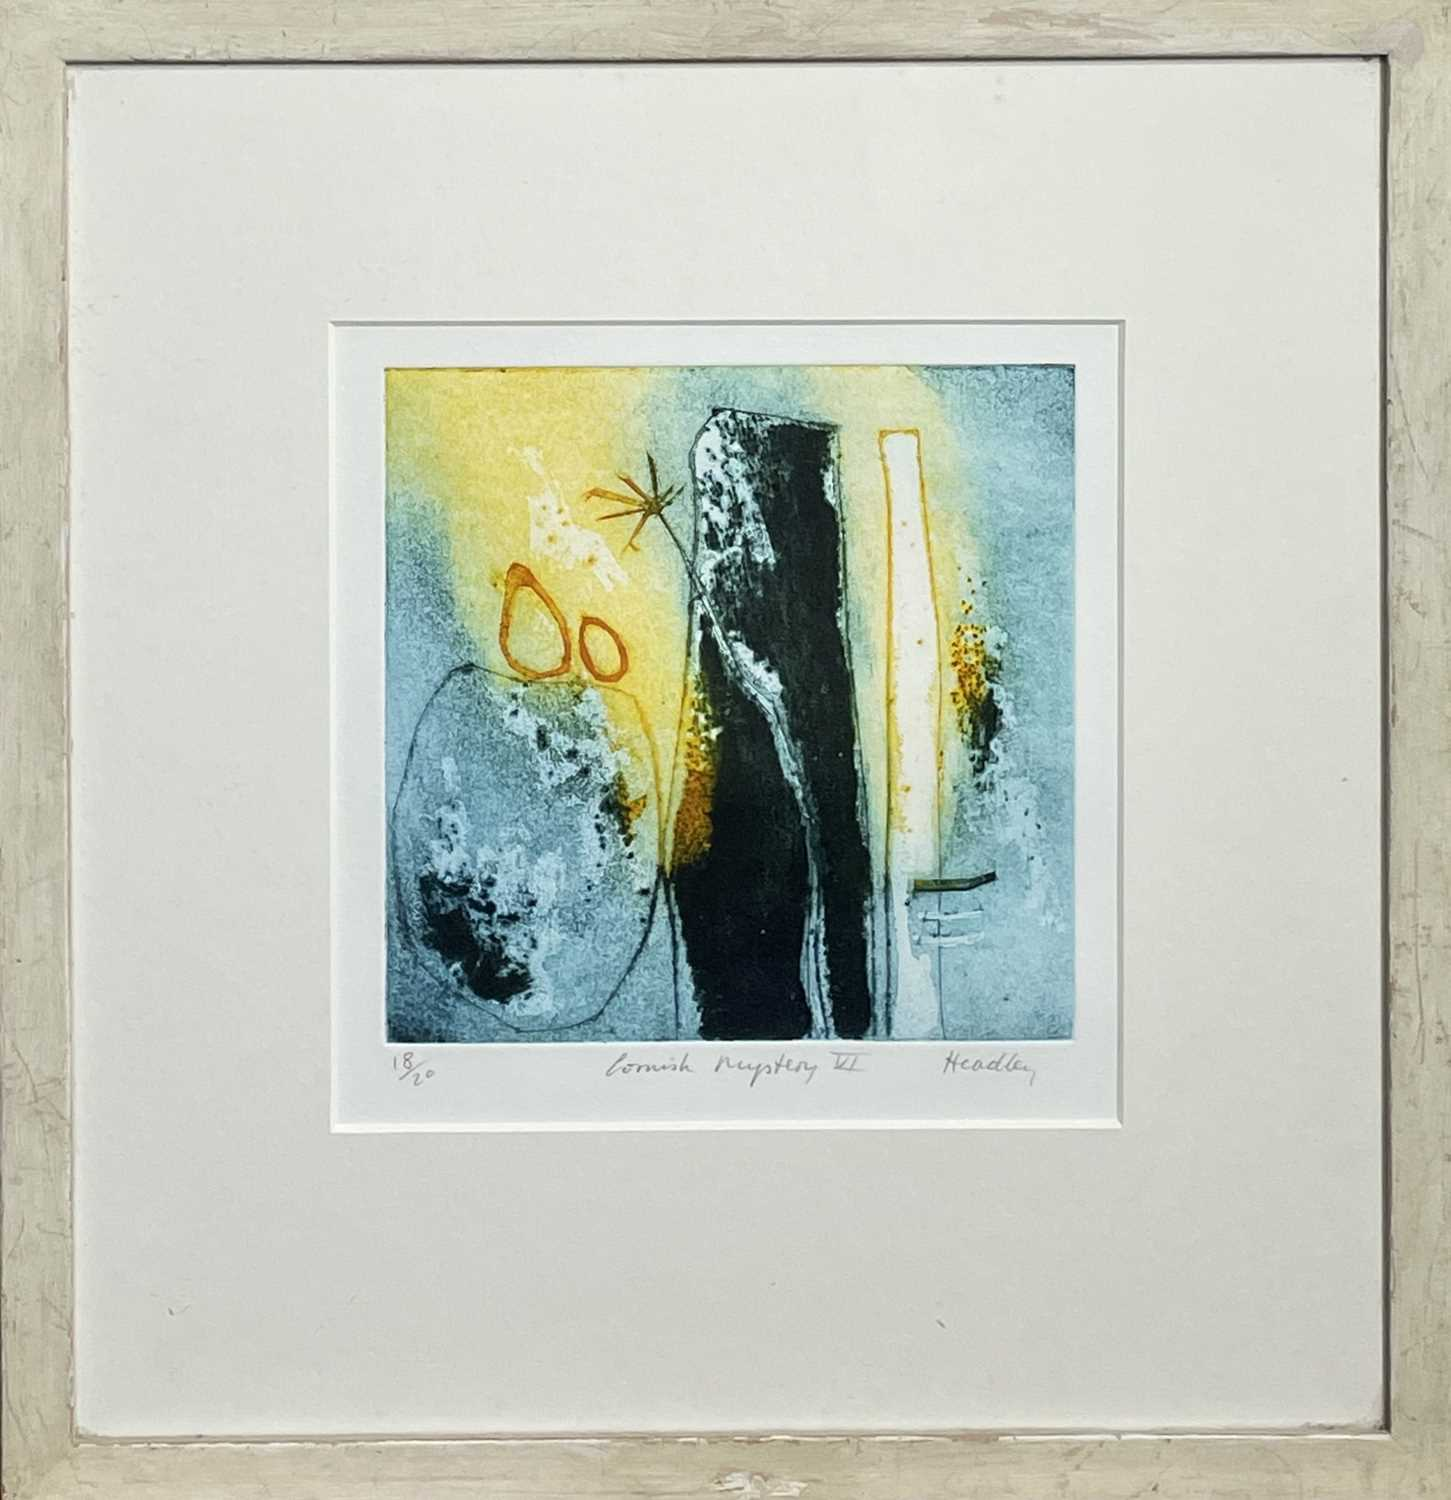 HEADLEY Cornish Mystery VIColoured etching Signed and inscribed 17.5 x 18cmTogether with ' - Image 3 of 9